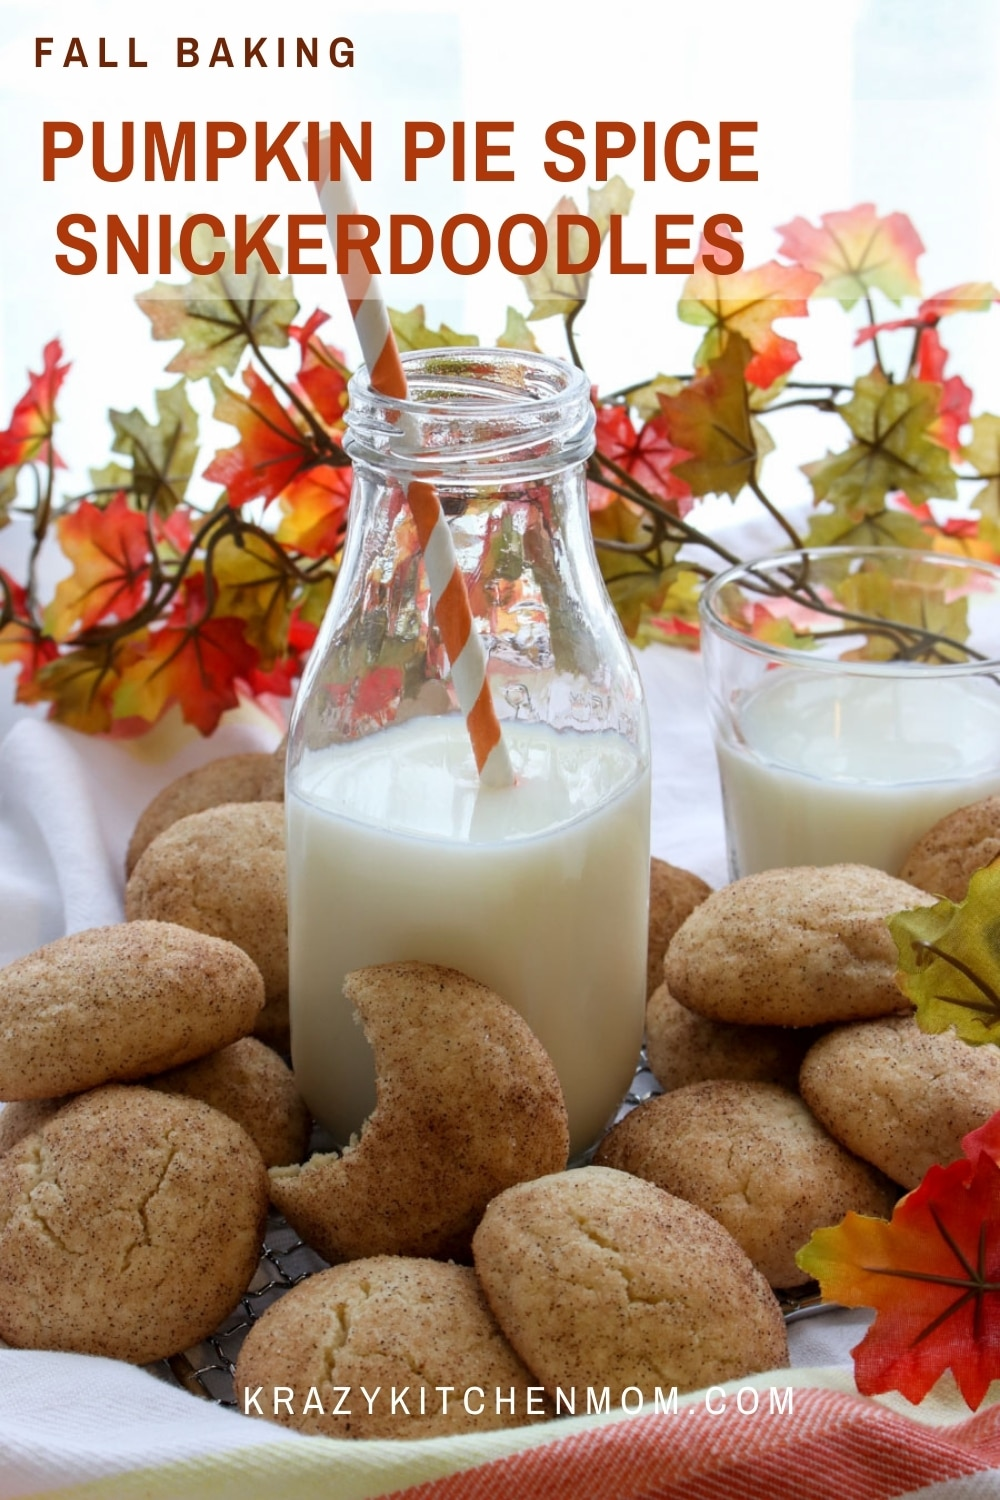 These cookies are a twist on the classic Snickerdoodle Cookie. Soft, fluffy sugar cookie-like cookies dusted in just the right amount of pumpkin pie spice to remind you of a crisp fall afternoon.  via @krazykitchenmom